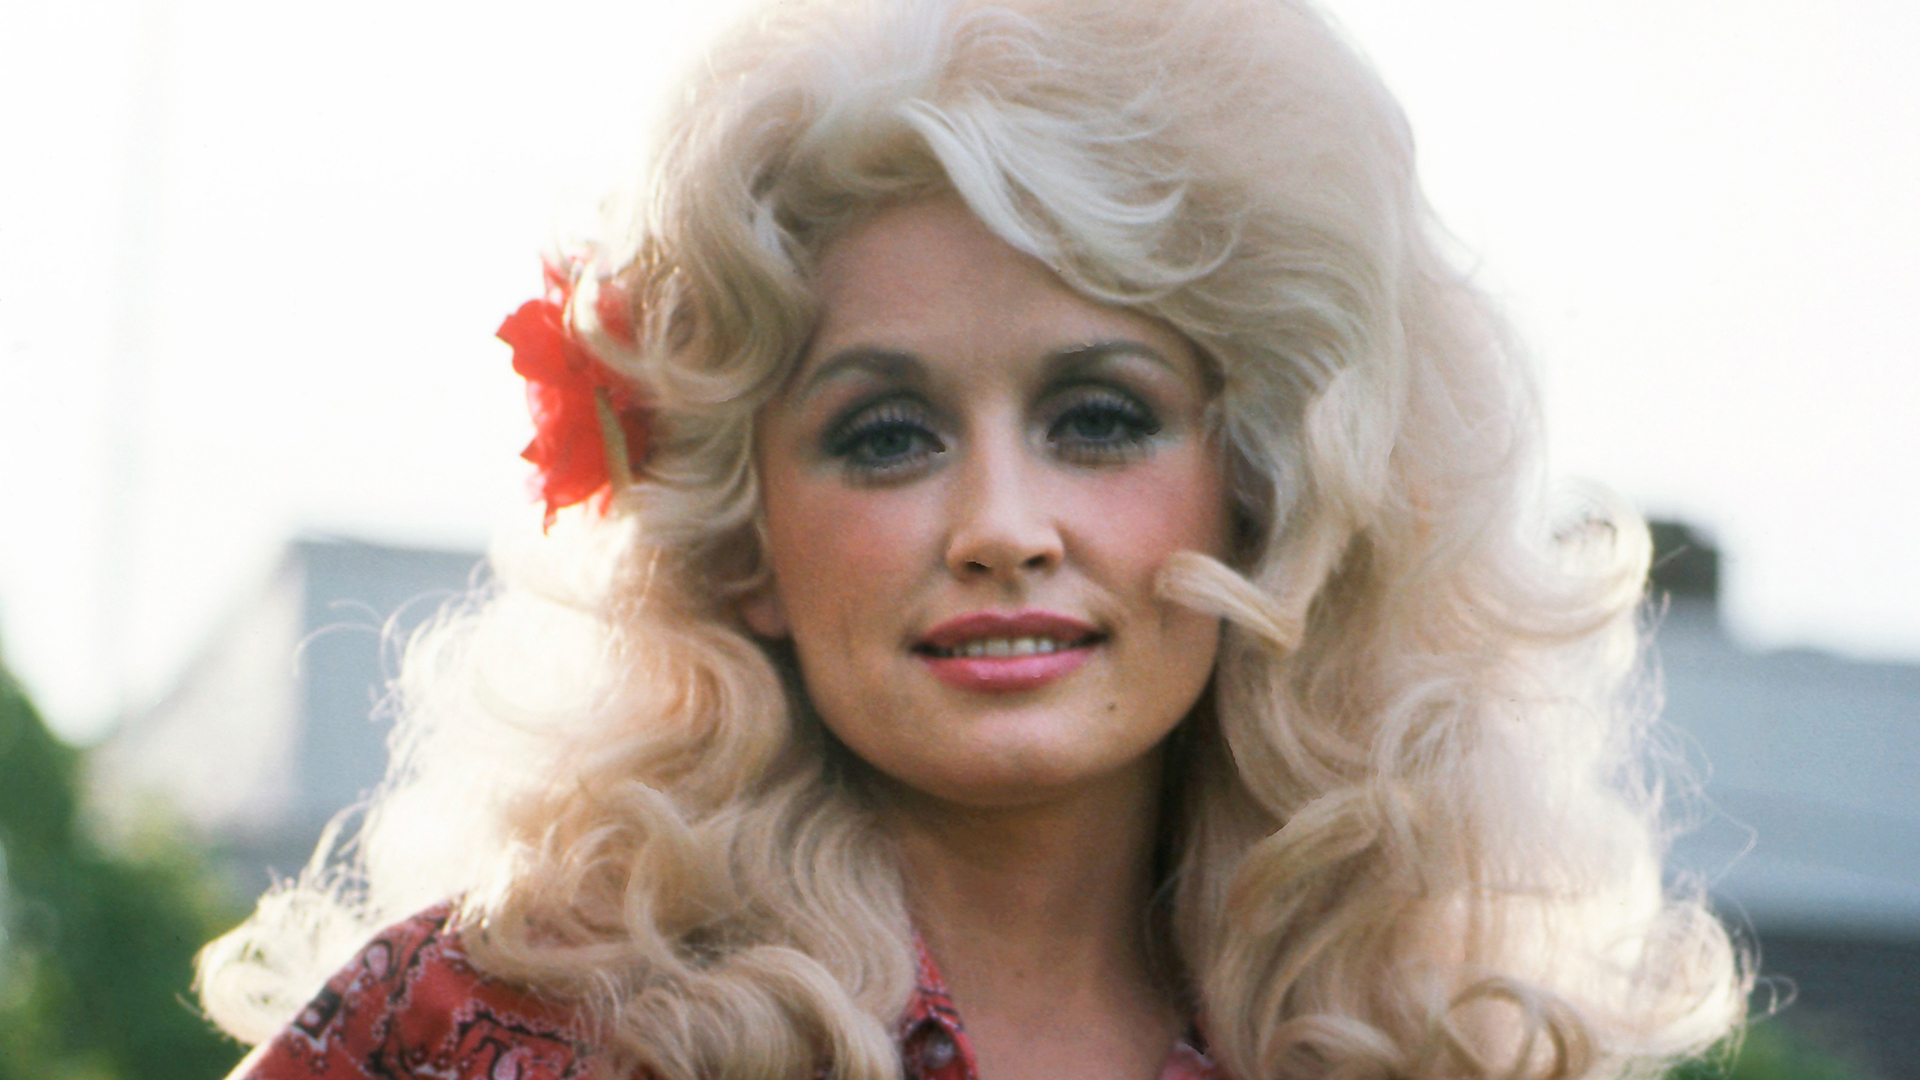 """February 21, 1981: Dolly Parton's """"9 to 5"""" Hit No. 1 and Became a Working Women's Anthem"""